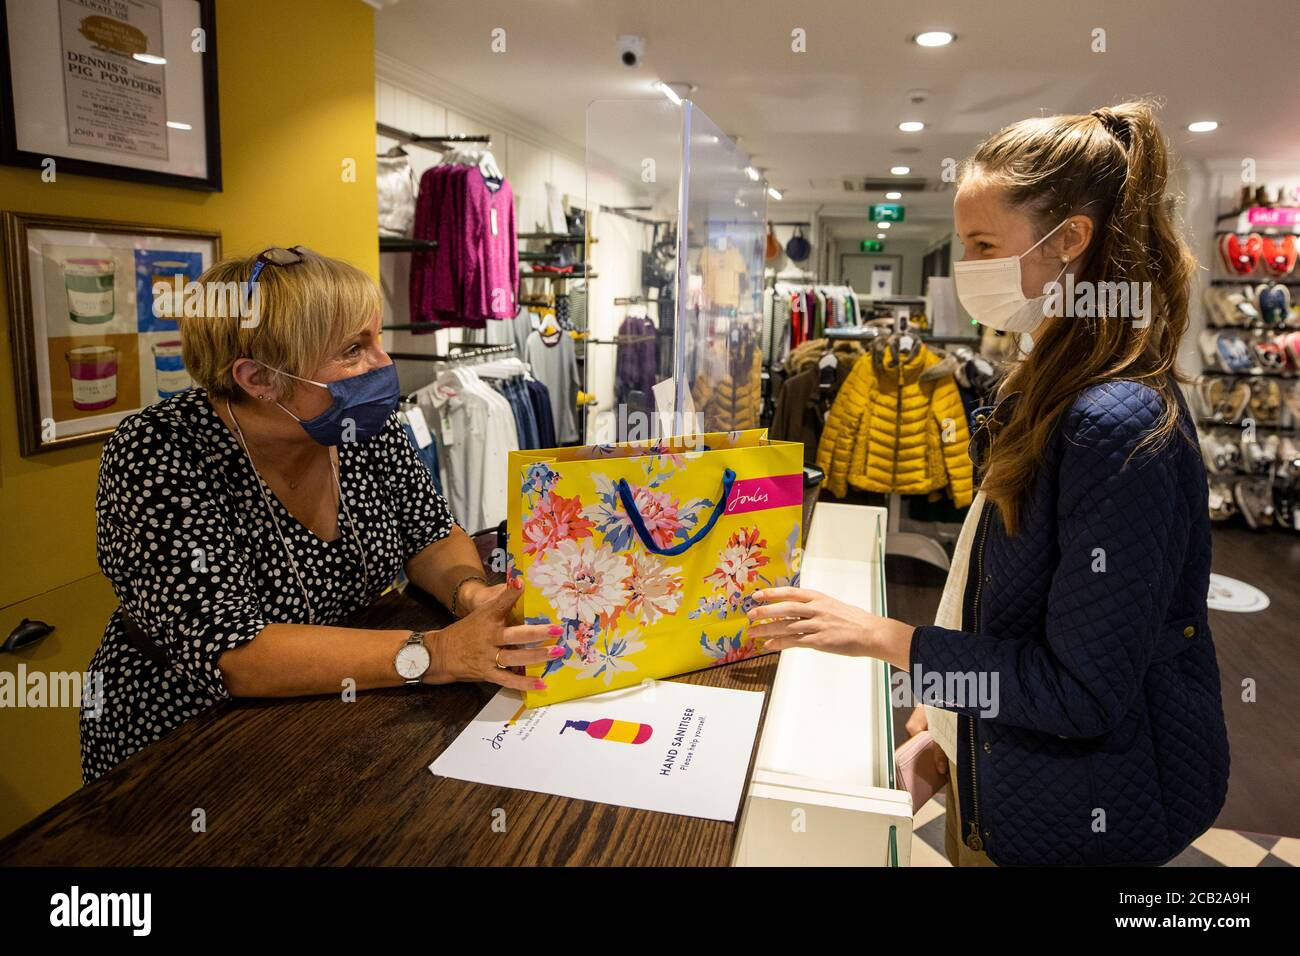 Mary Rogan Shop Assistant At Joules In Belfast Hands Ella Copper Her Purchase While Wearing A Face Mask As Face Coverings Are Now Compulsory For Shoppers In Northern Ireland Stock Photo